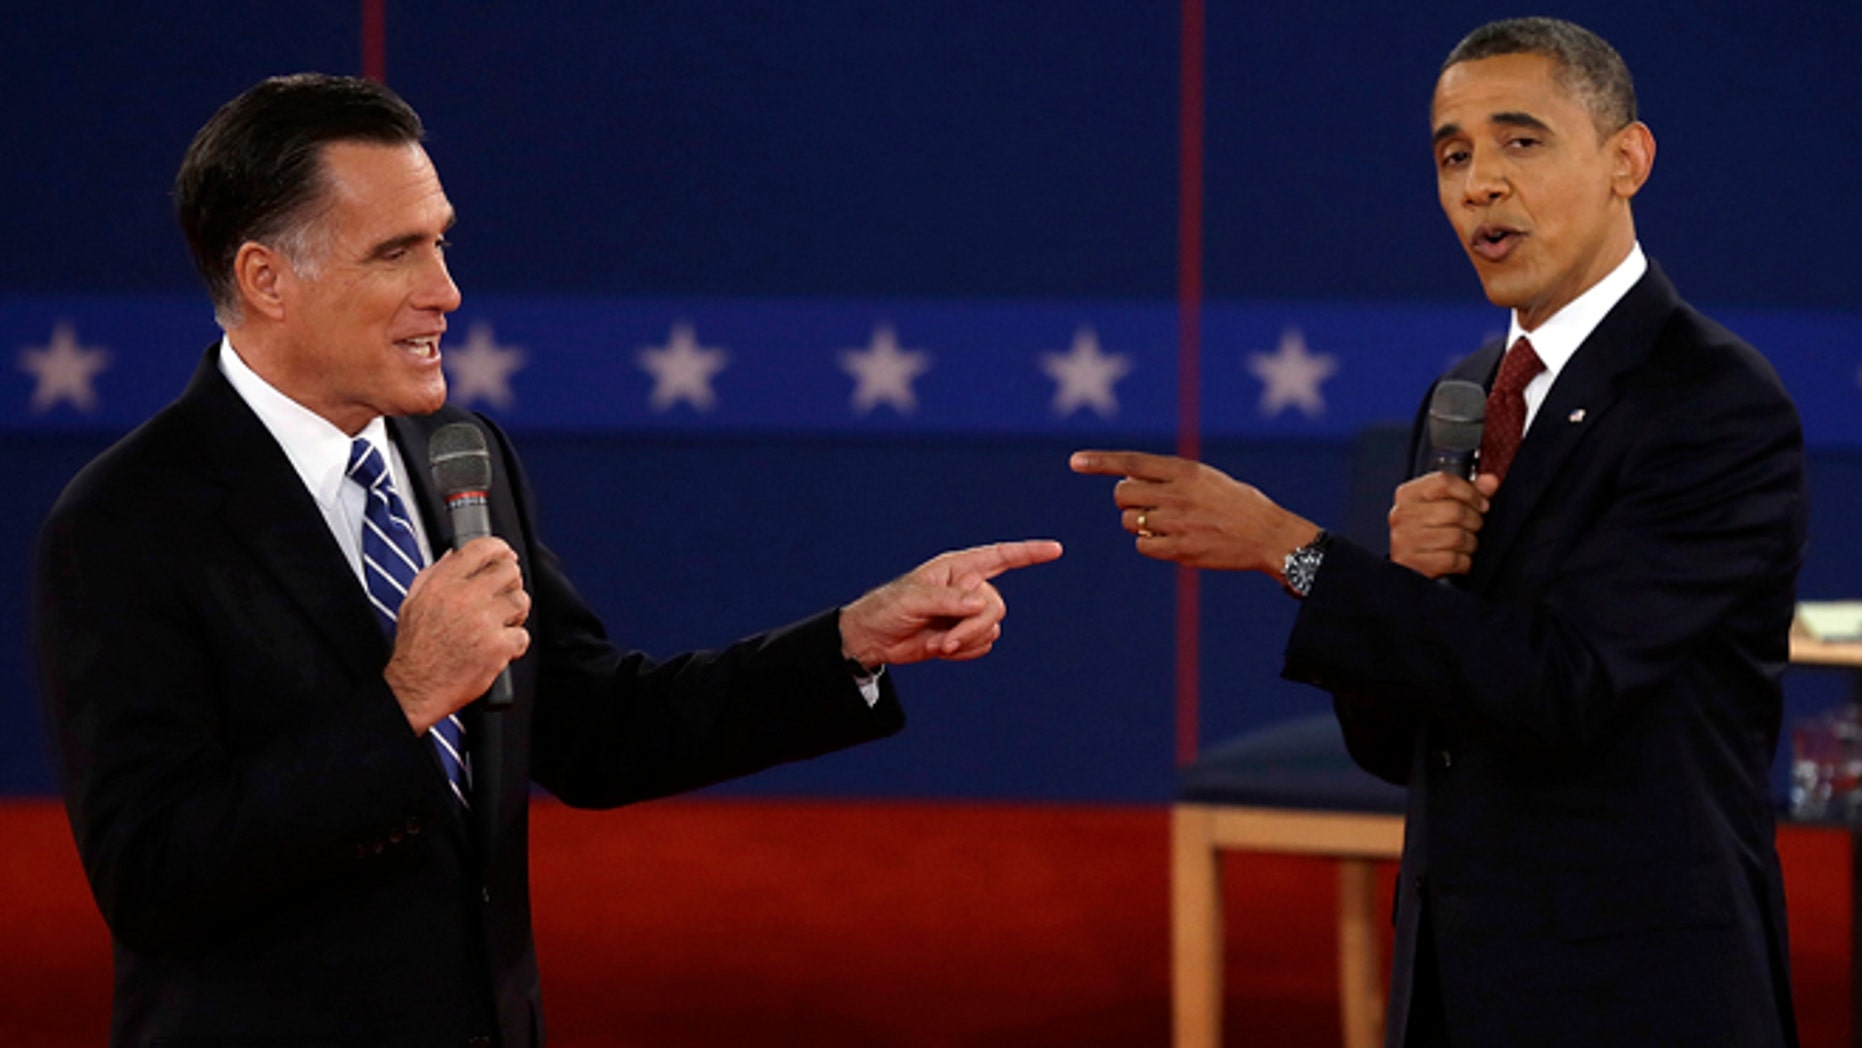 Oct. 16, 2012: Republican presidential nominee Mitt Romney  and President Barack Obama spar during the second presidential debate.